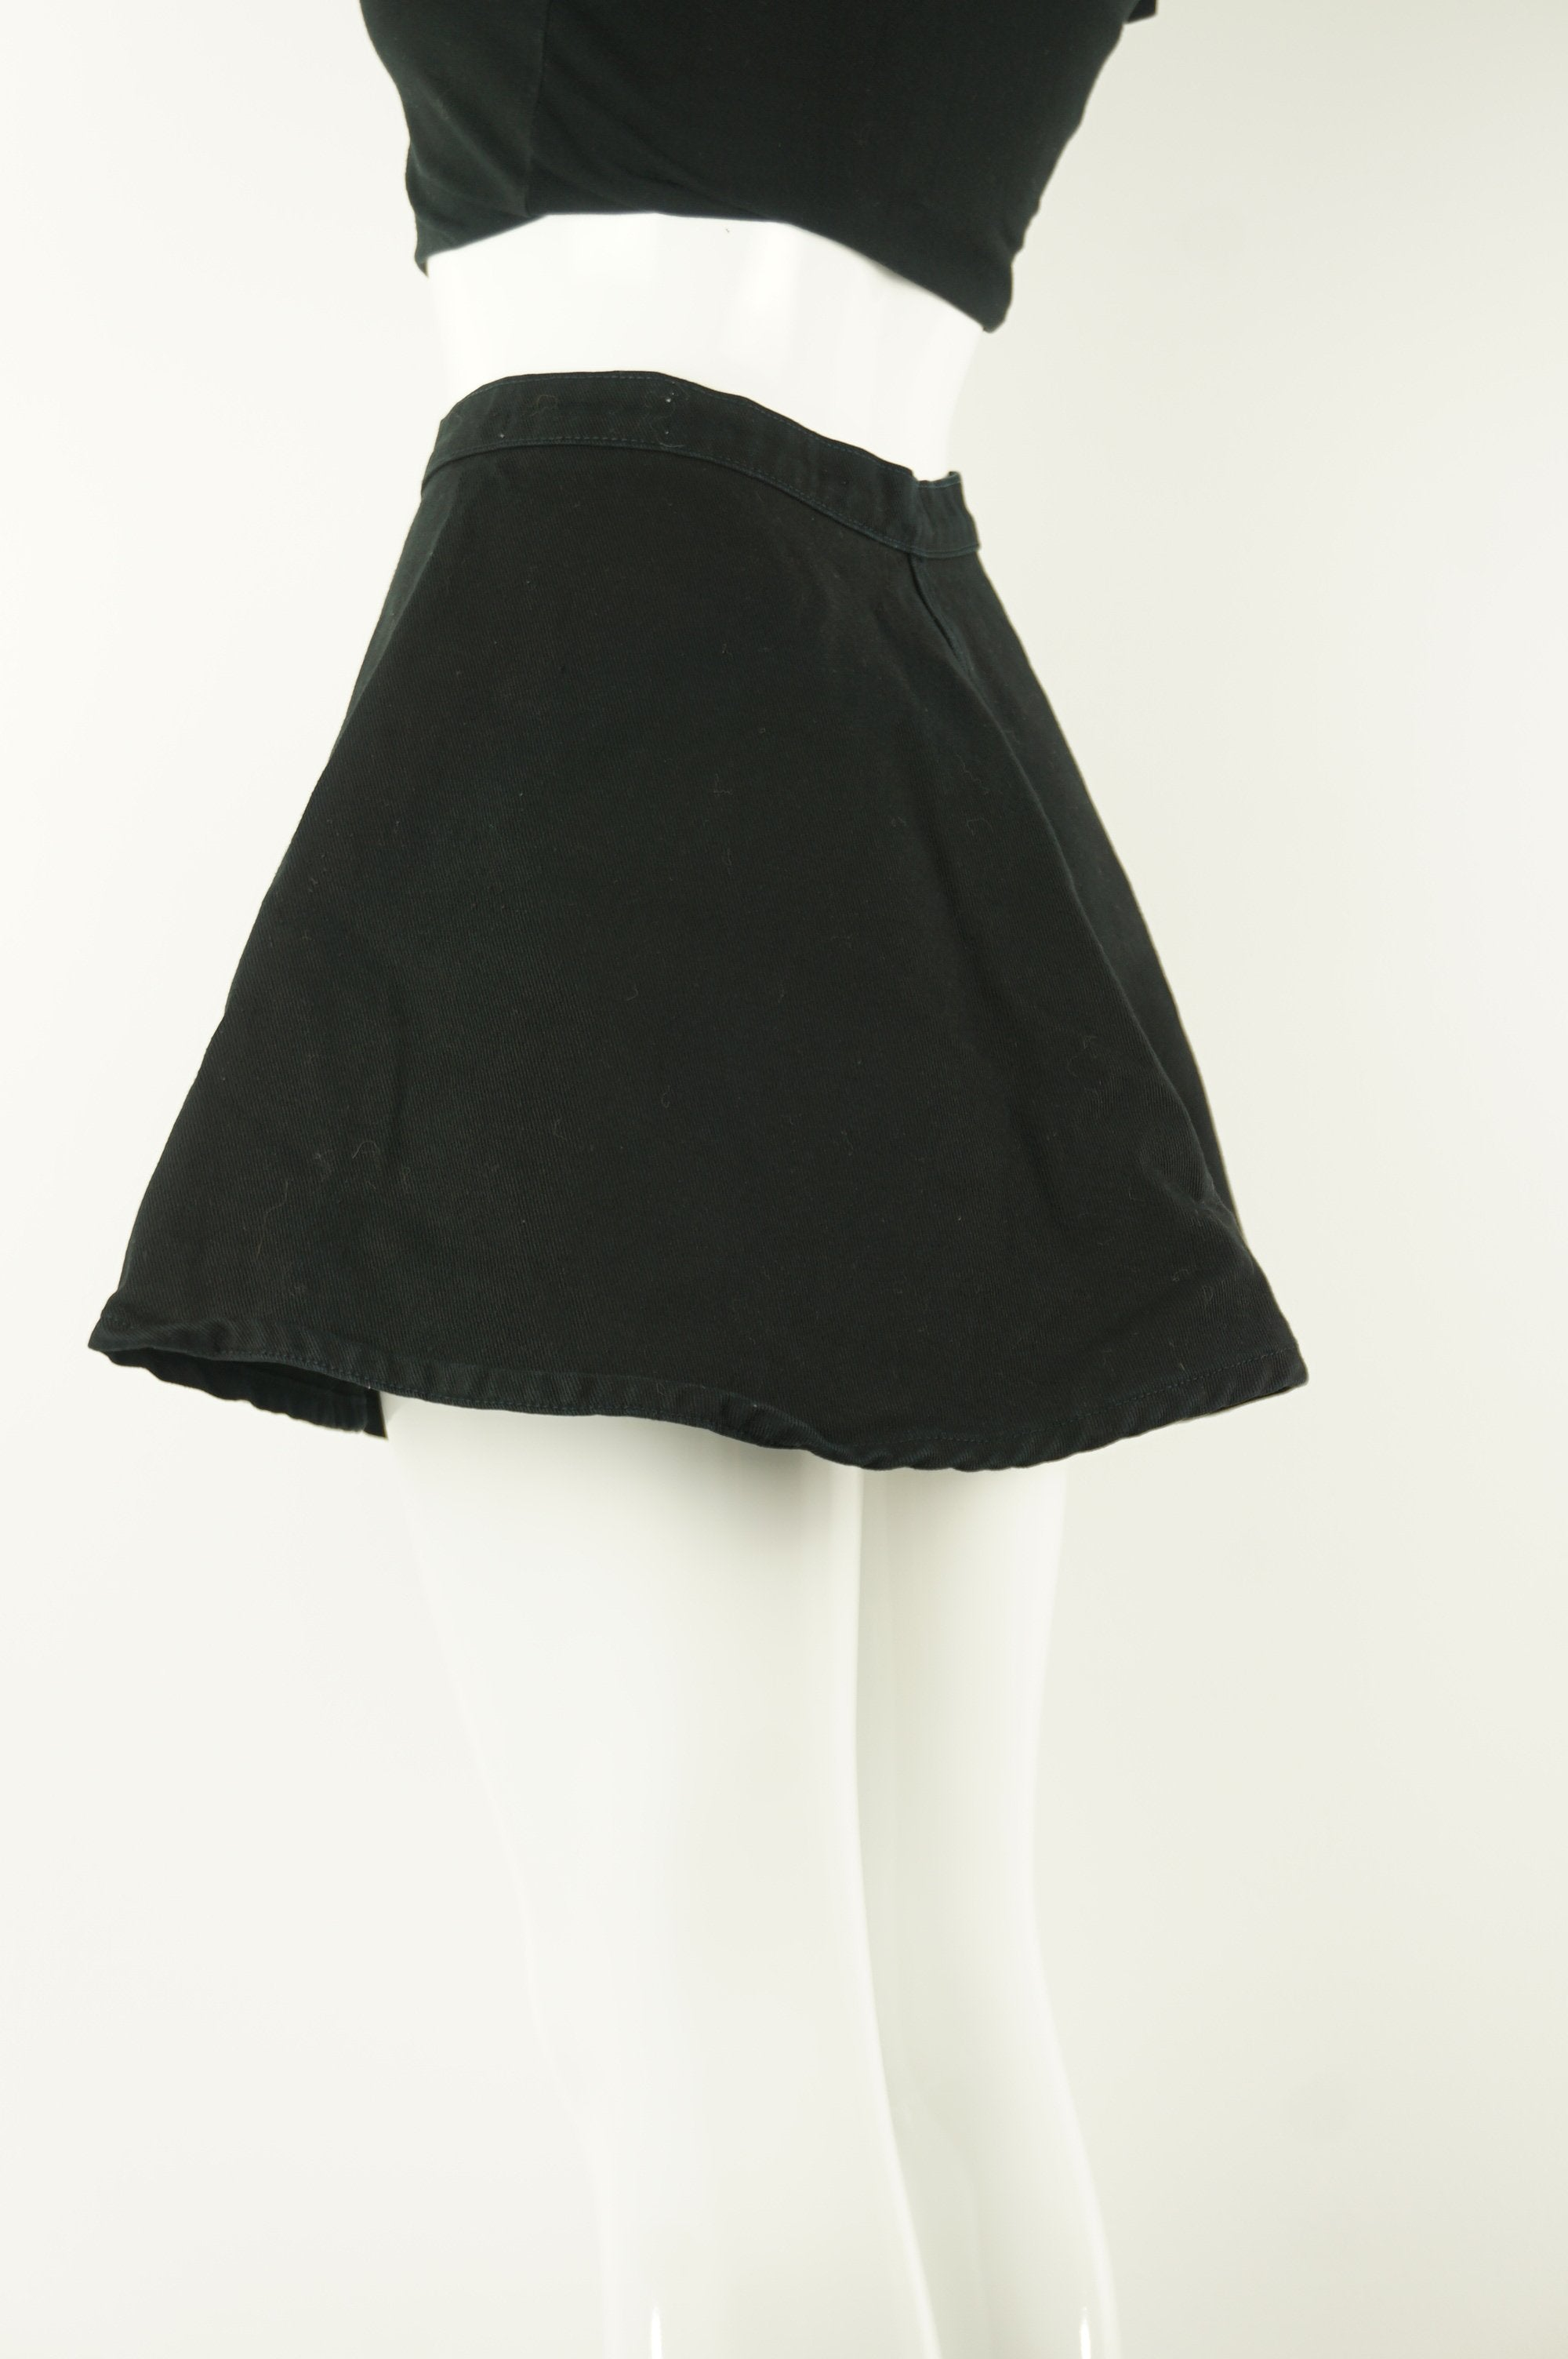 American Apparel  Denim Mini Skirt, The Classic denim skirt with button and zipper in the front. Fits small., Black, 100% Cotton, women's Dresses & Skirts, women's Black Dresses & Skirts, American Apparel  women's Dresses & Skirts, women's denim skirt, women's wide skirt